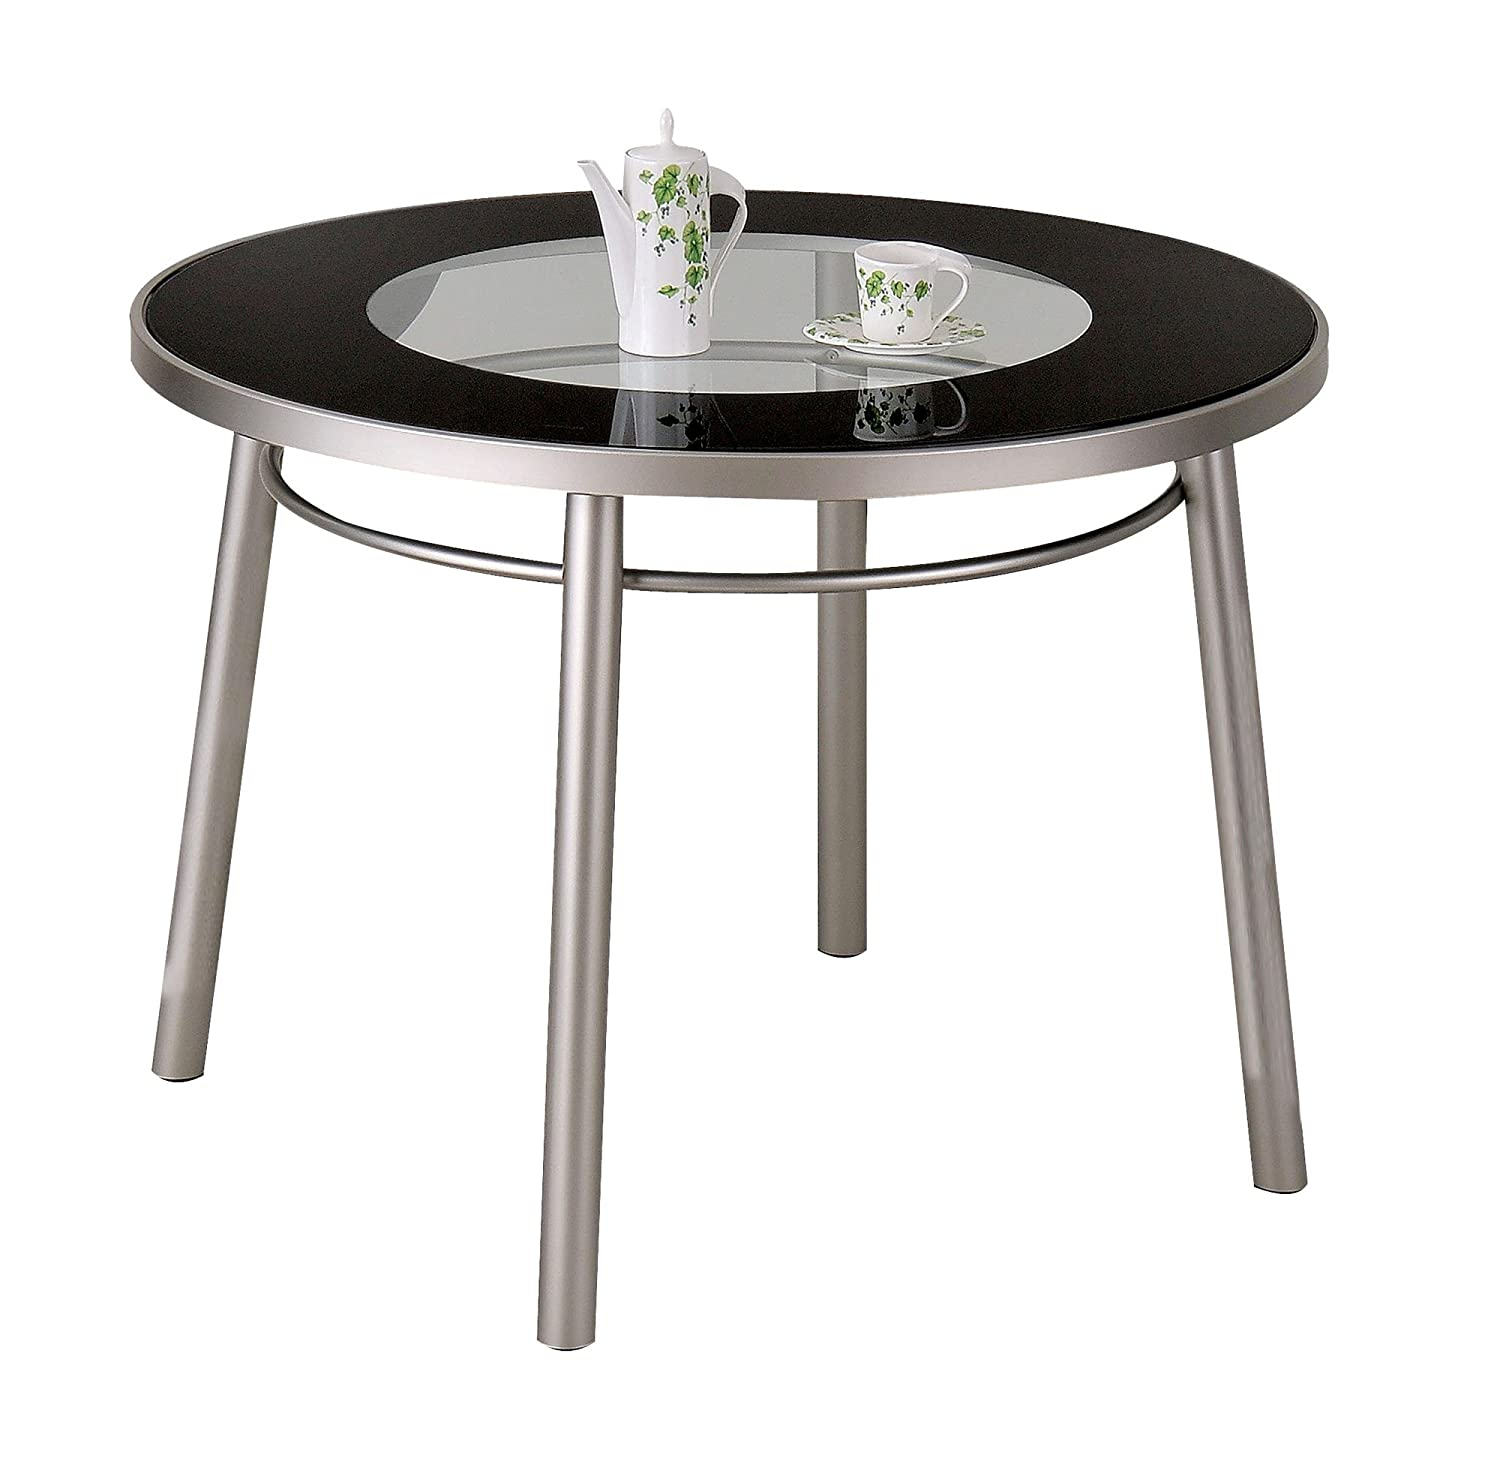 Round Table Madera.Amazon Com Acme 12120 Madera Dining Table With 8mm Print Glass Top